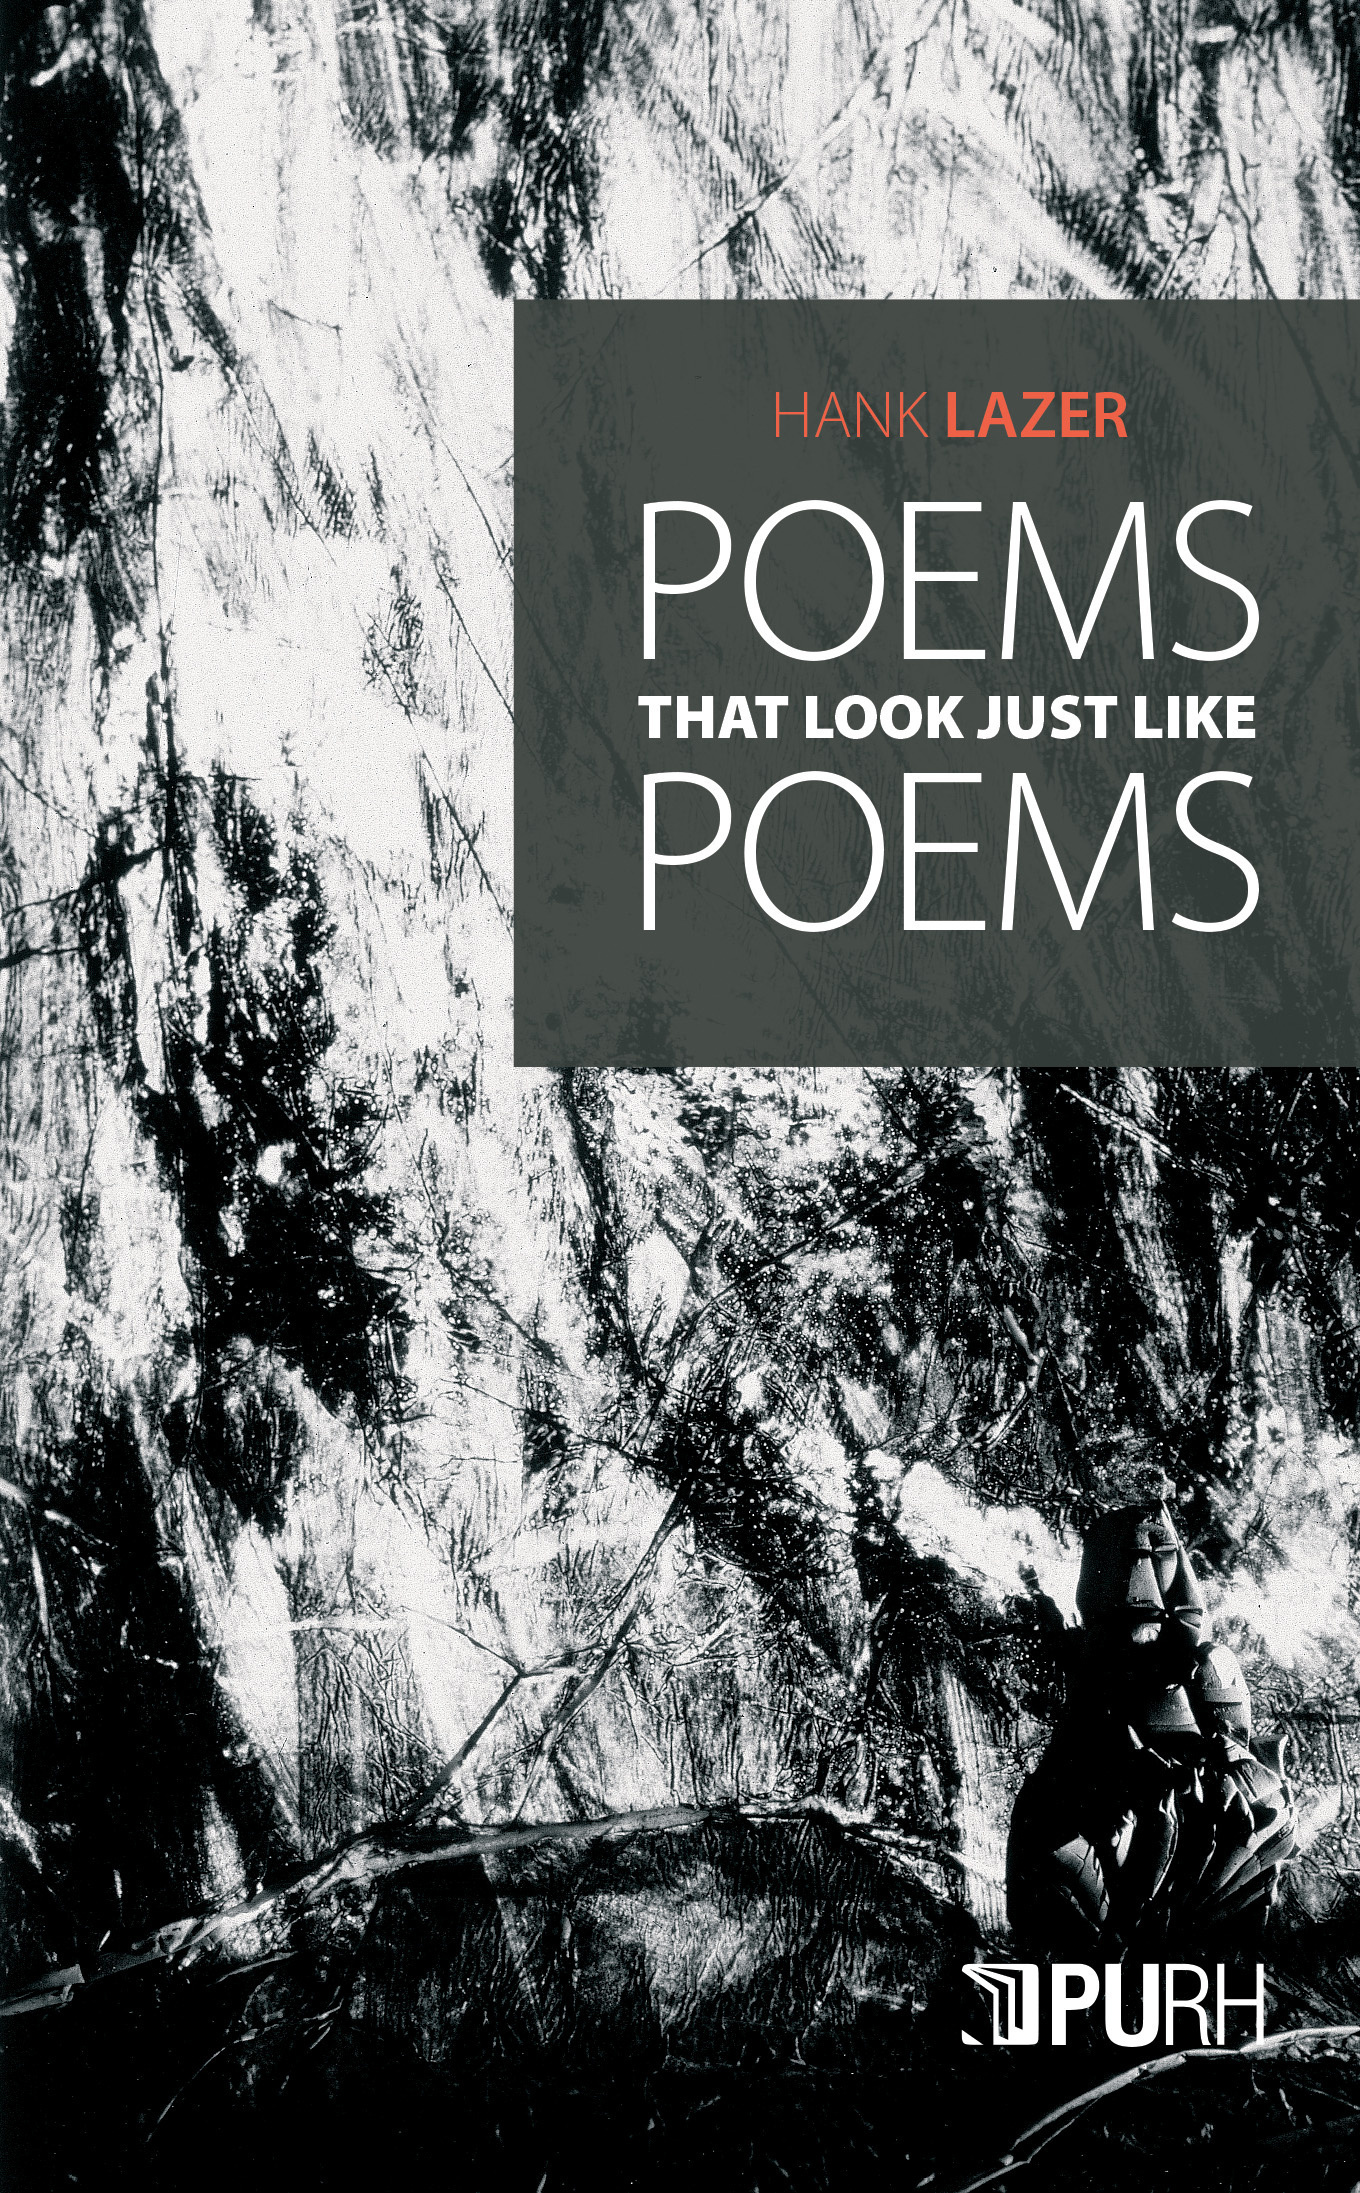 POEMS THAT LOOK JUST LIKE POEMS